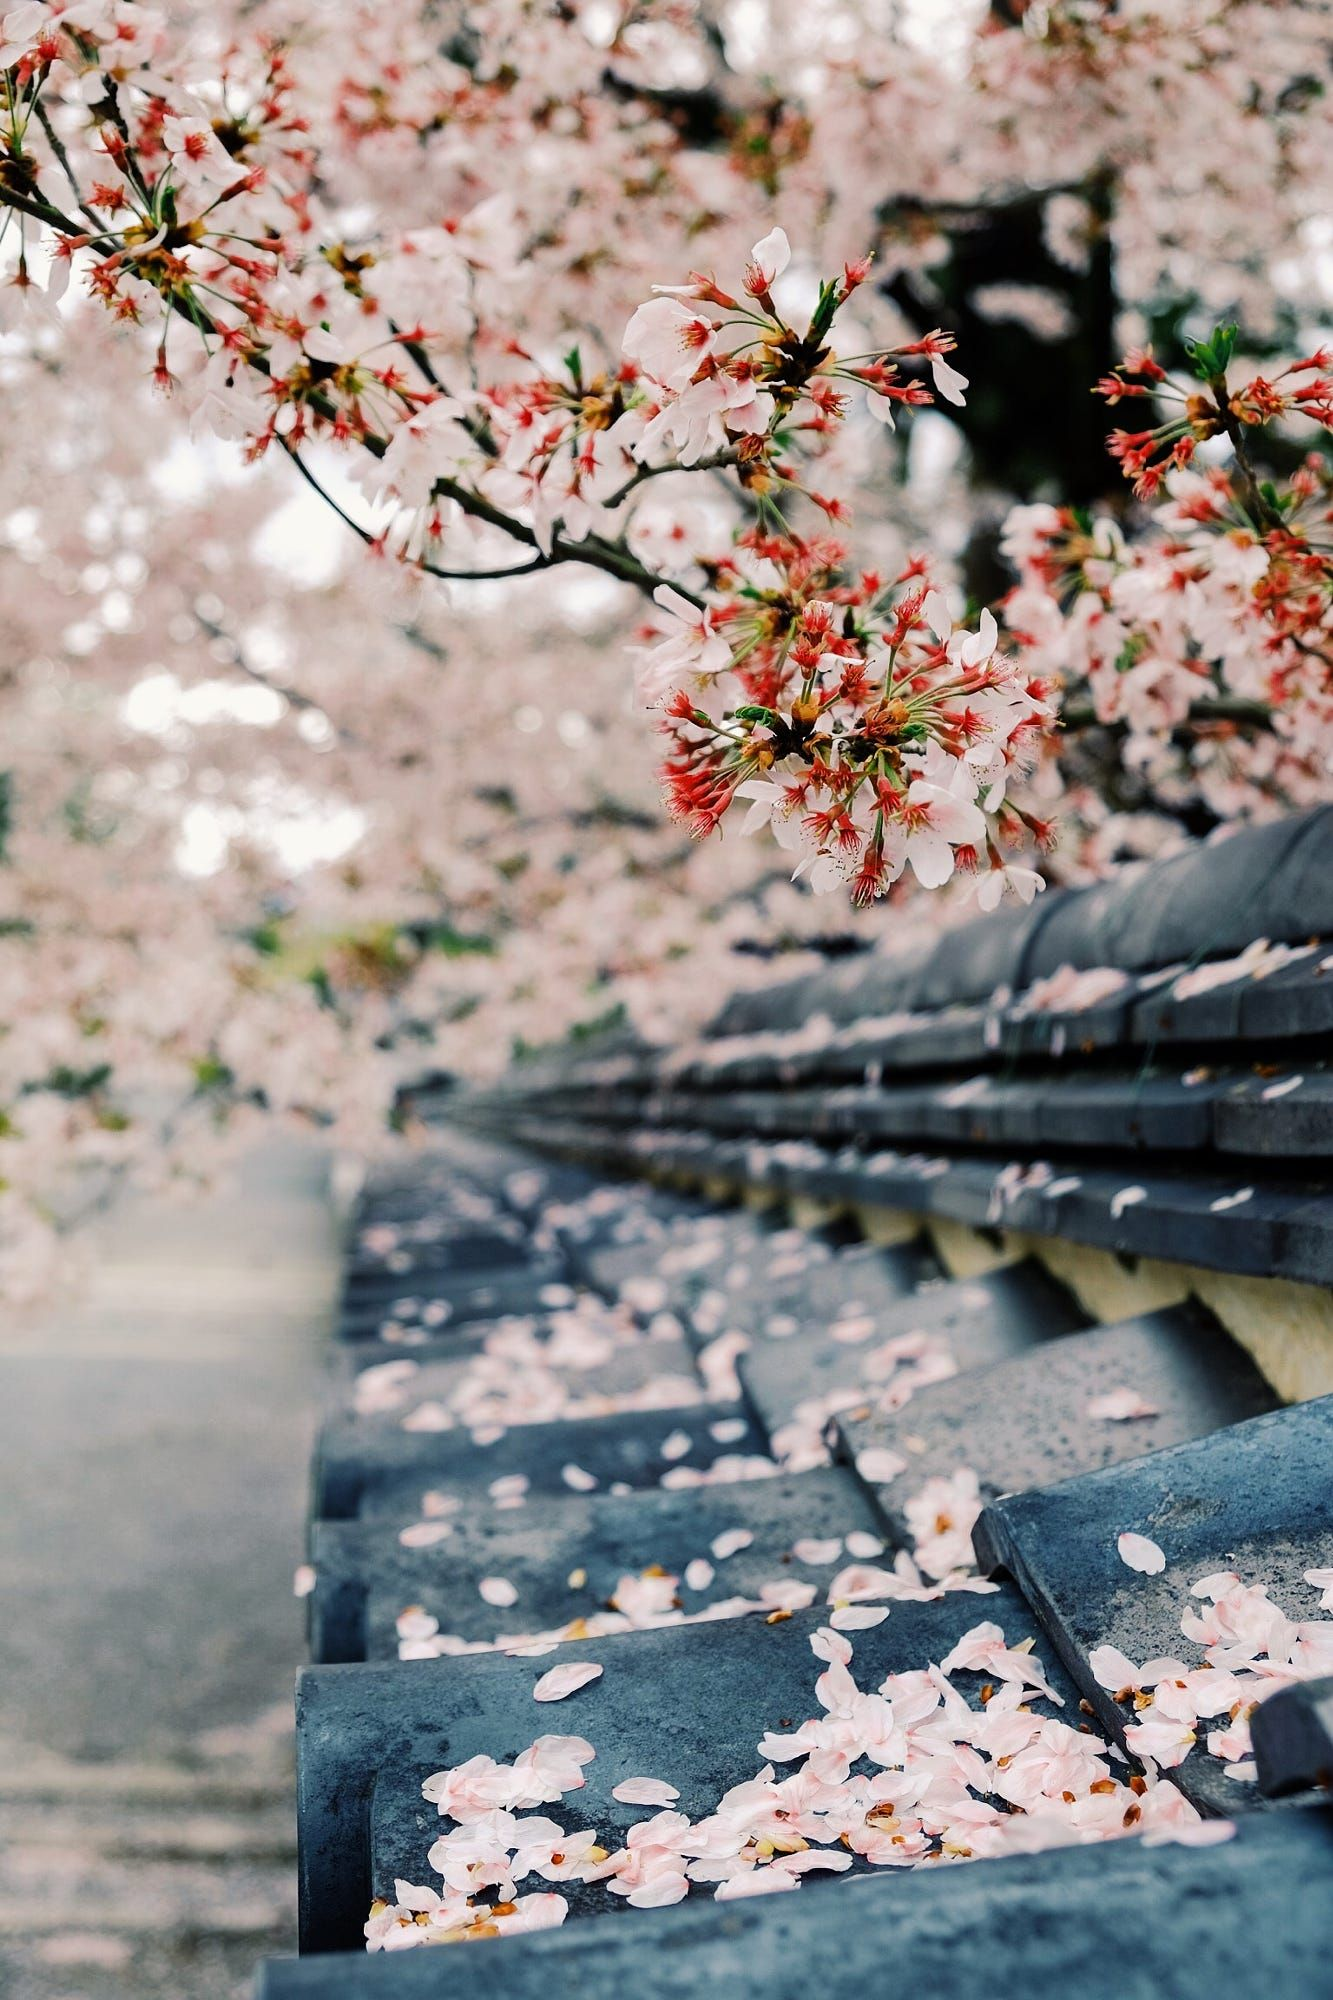 Wandering the magical streets of Kyoto during sakura season... Kyoto moments by Martin Hoffmann on 500px